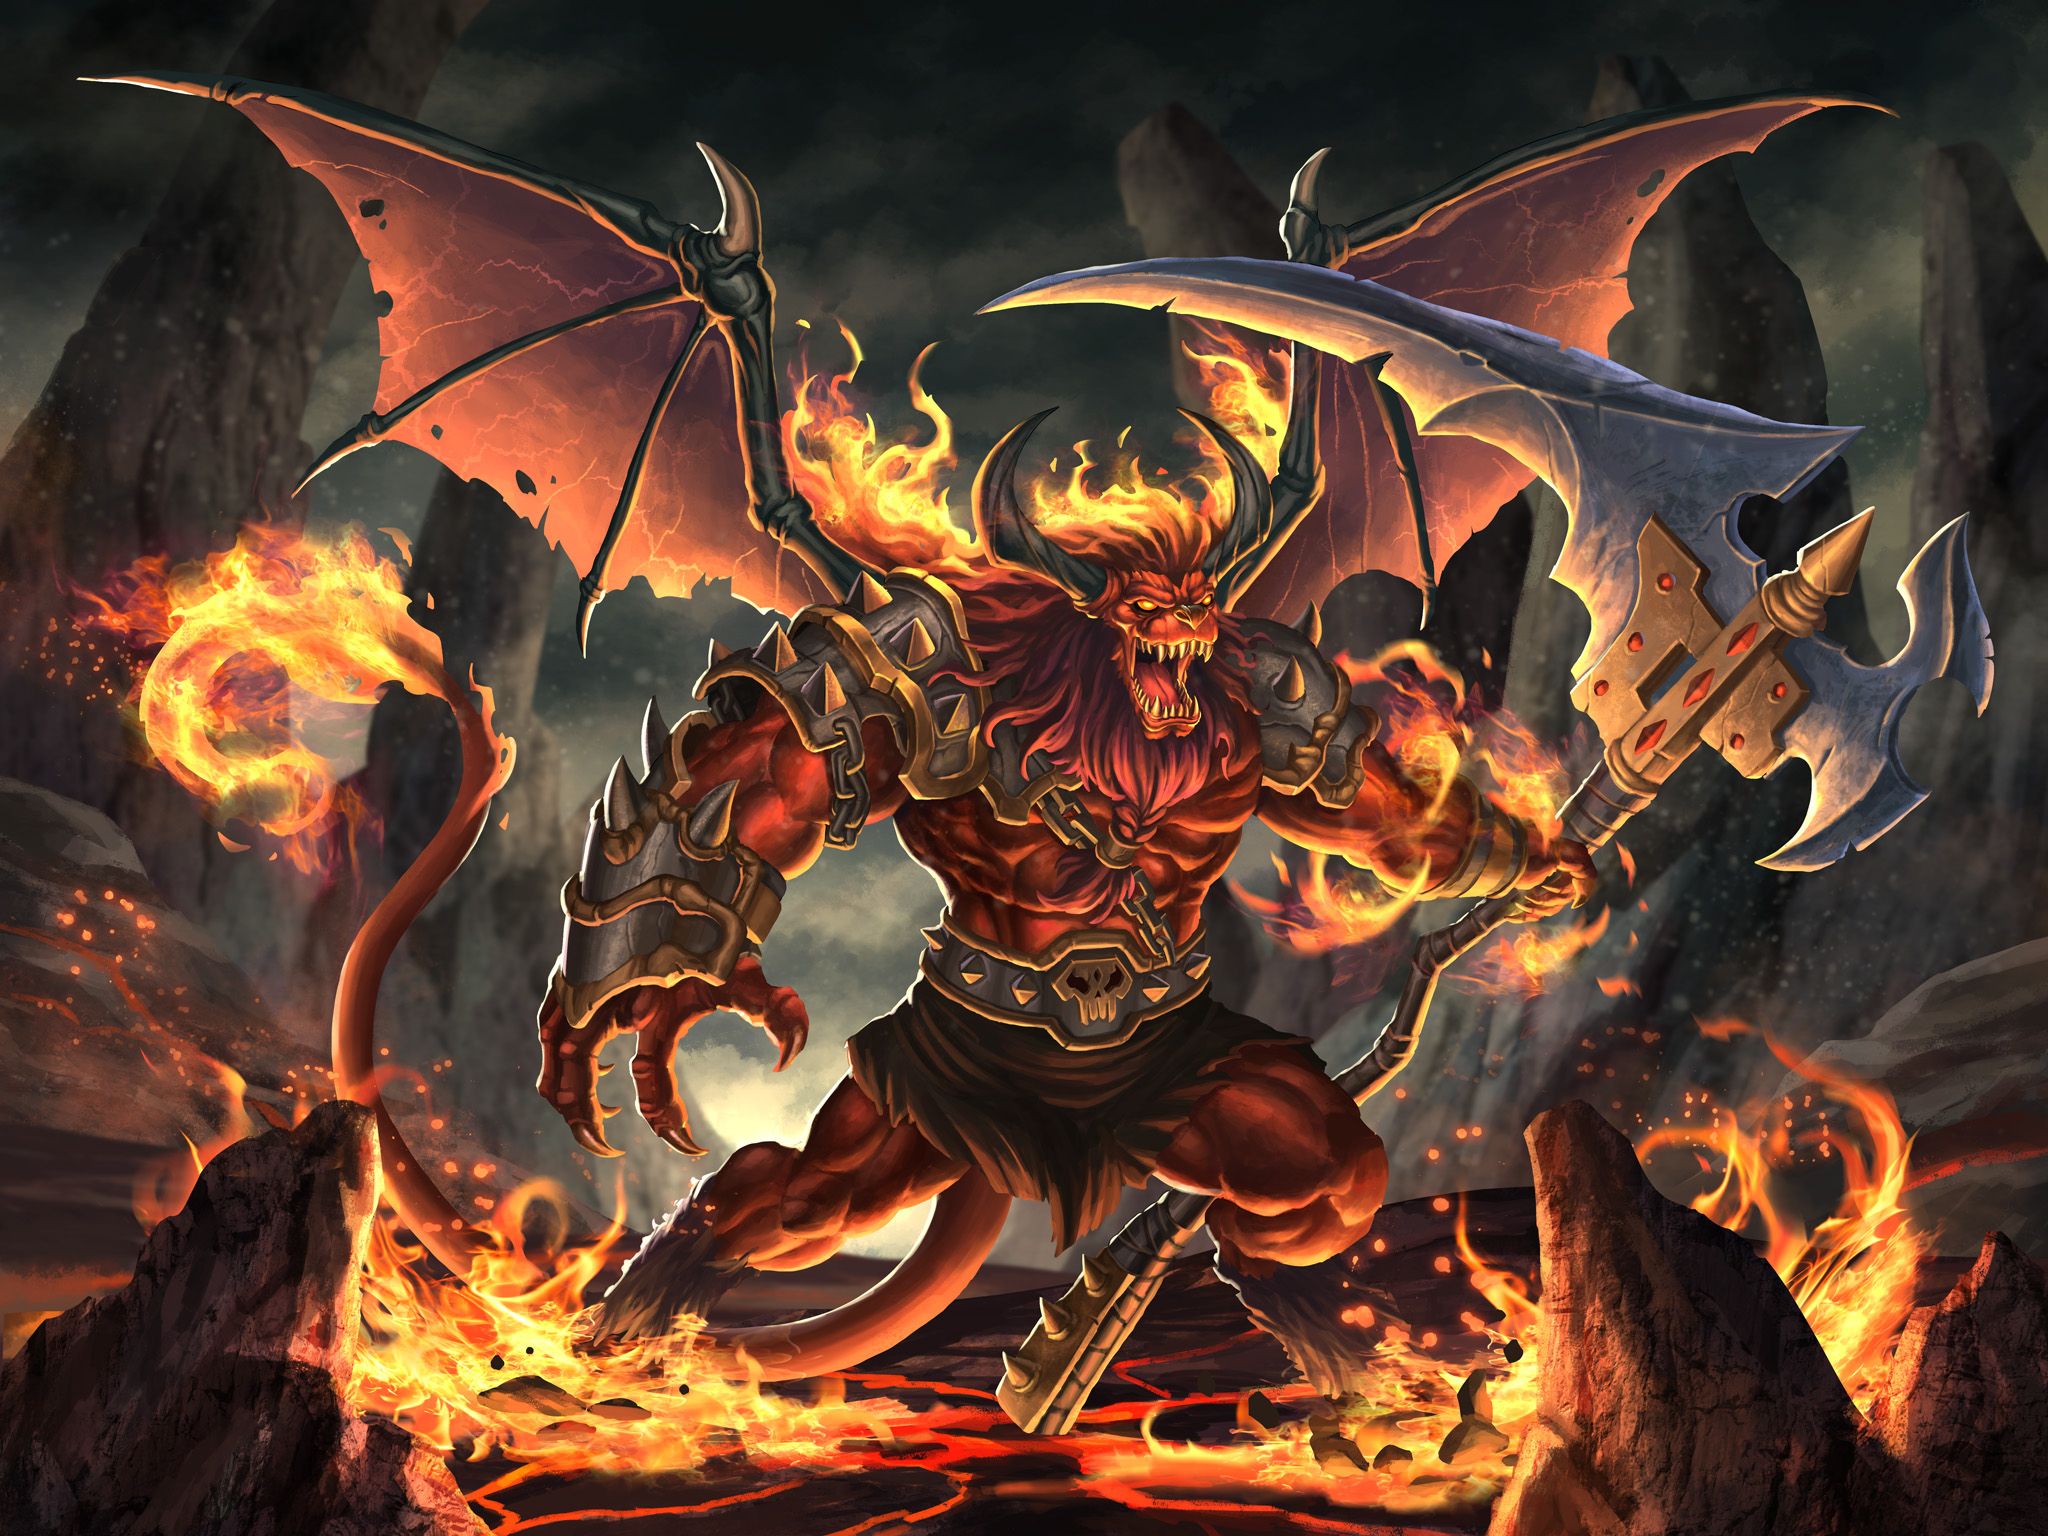 DC0112_Lord of hell_color_01.jpg